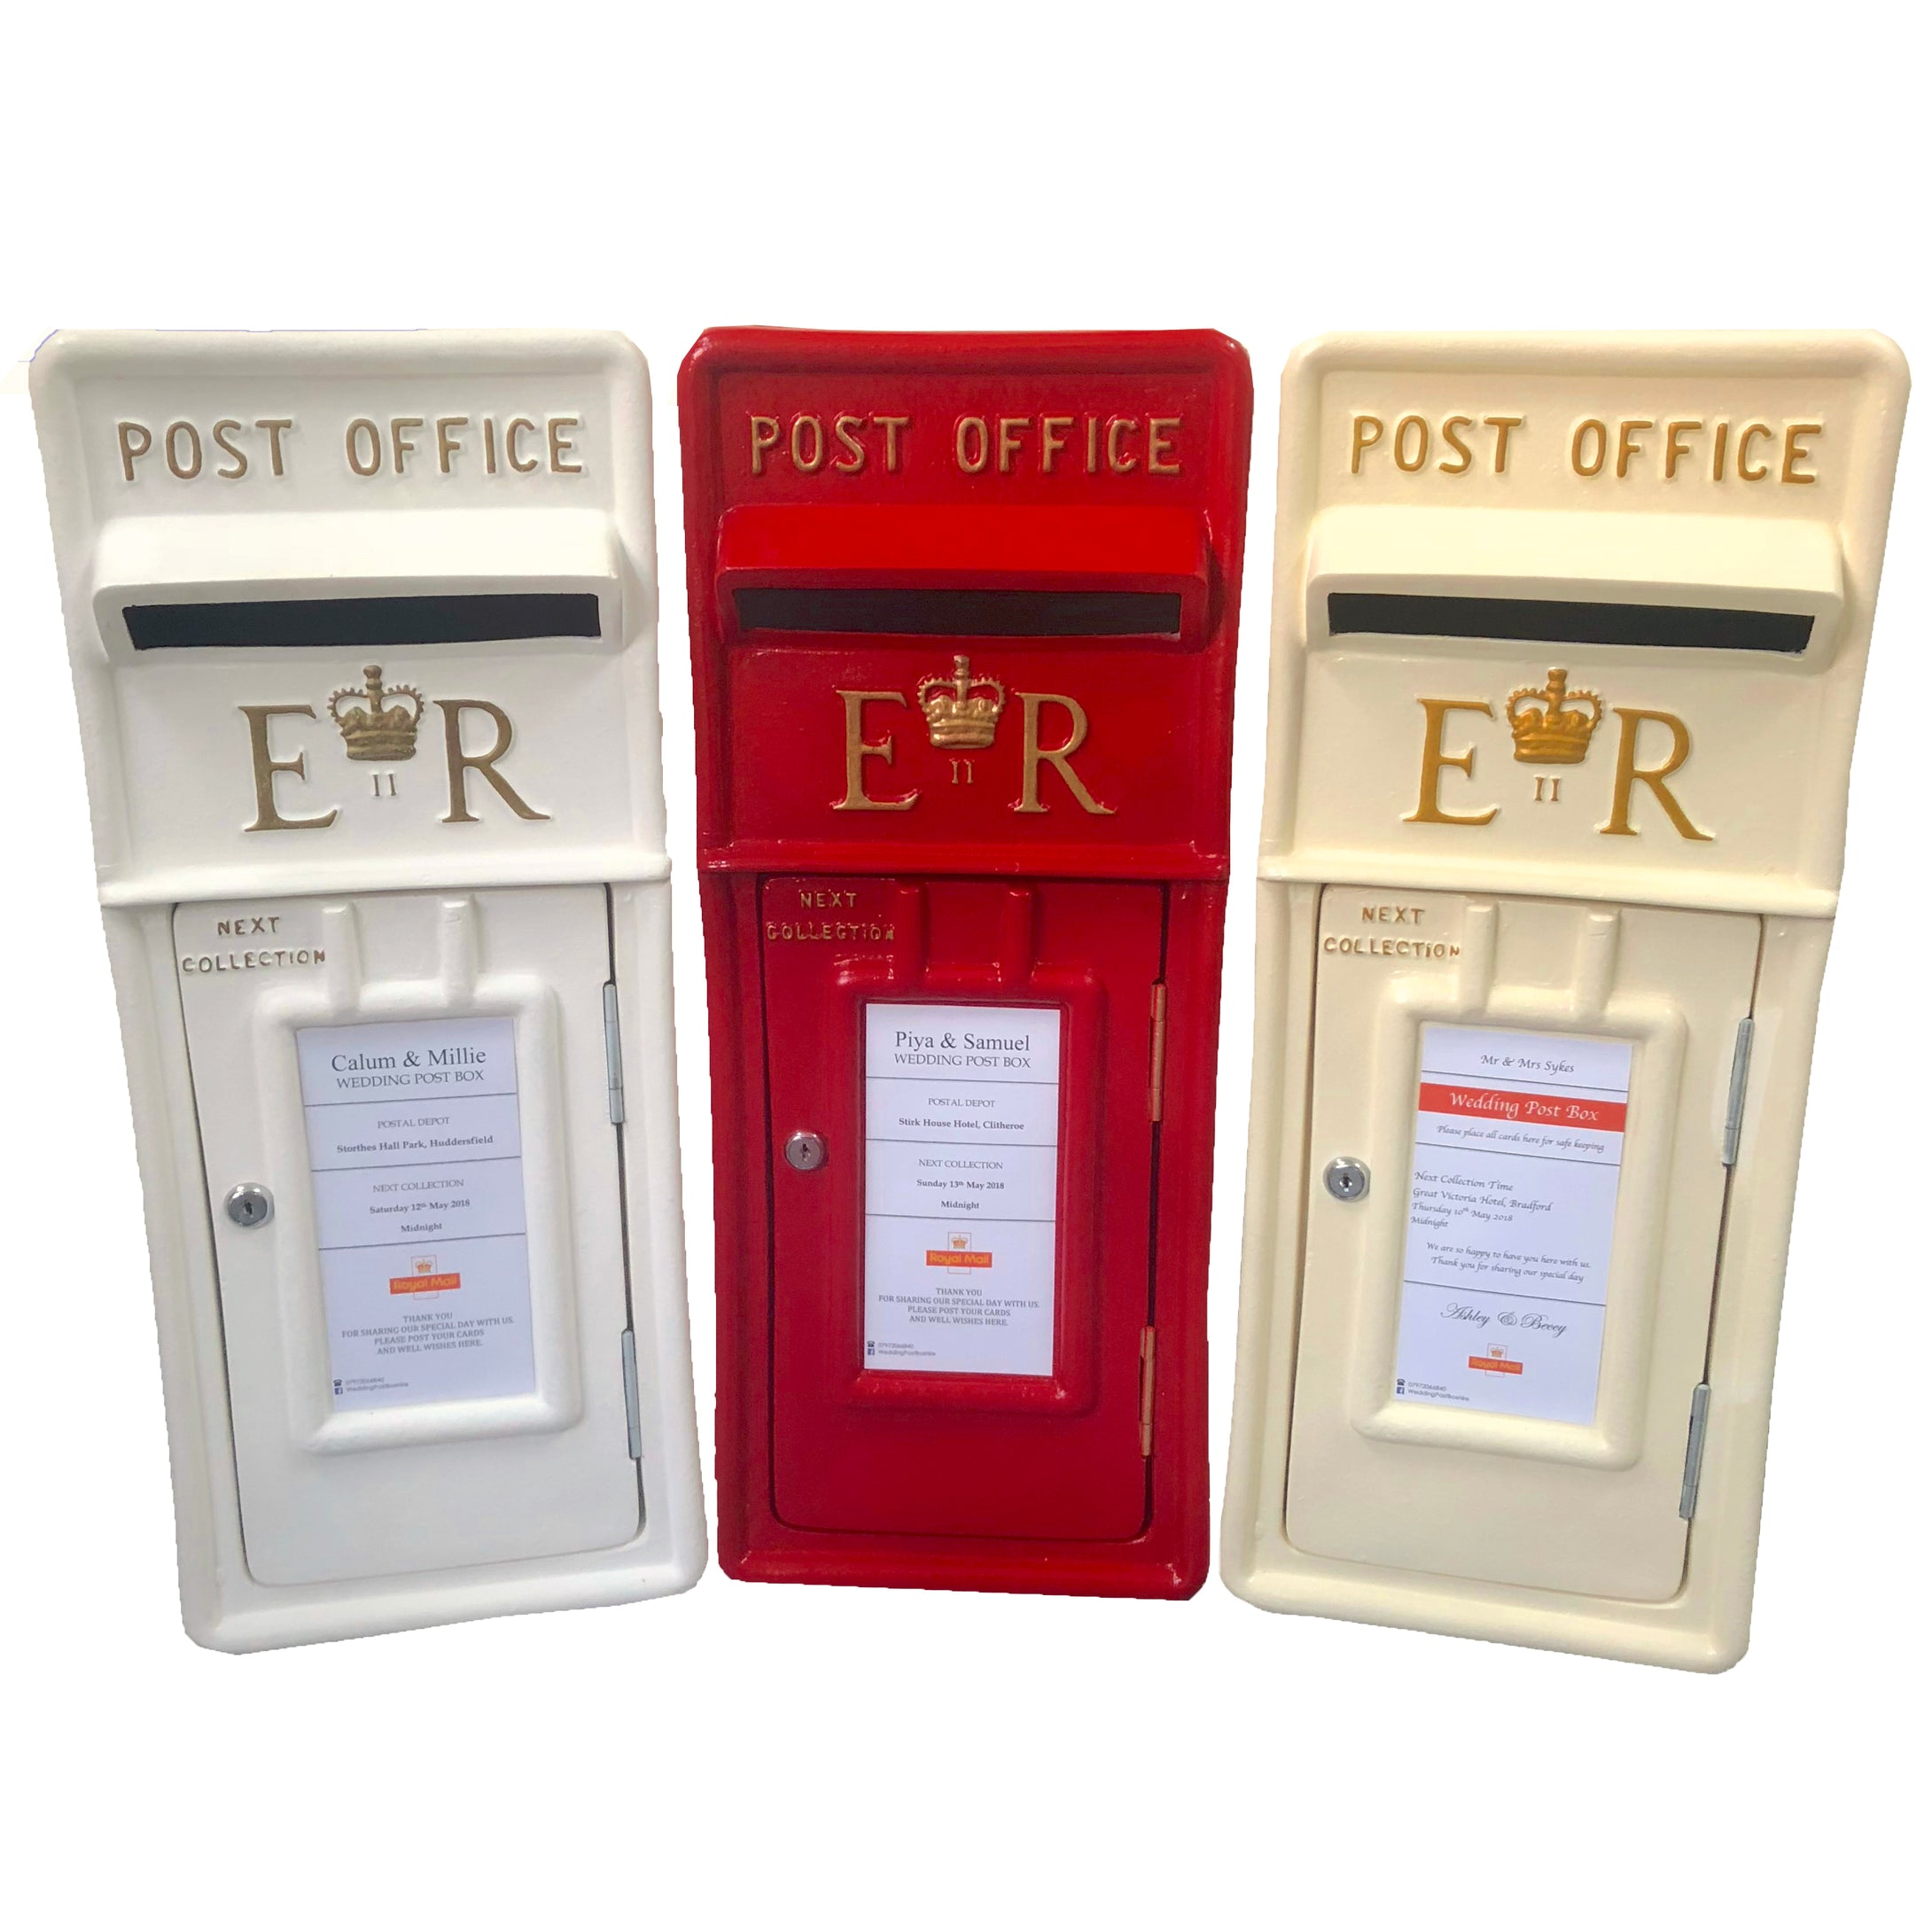 Royal Mail Post Box for Hire